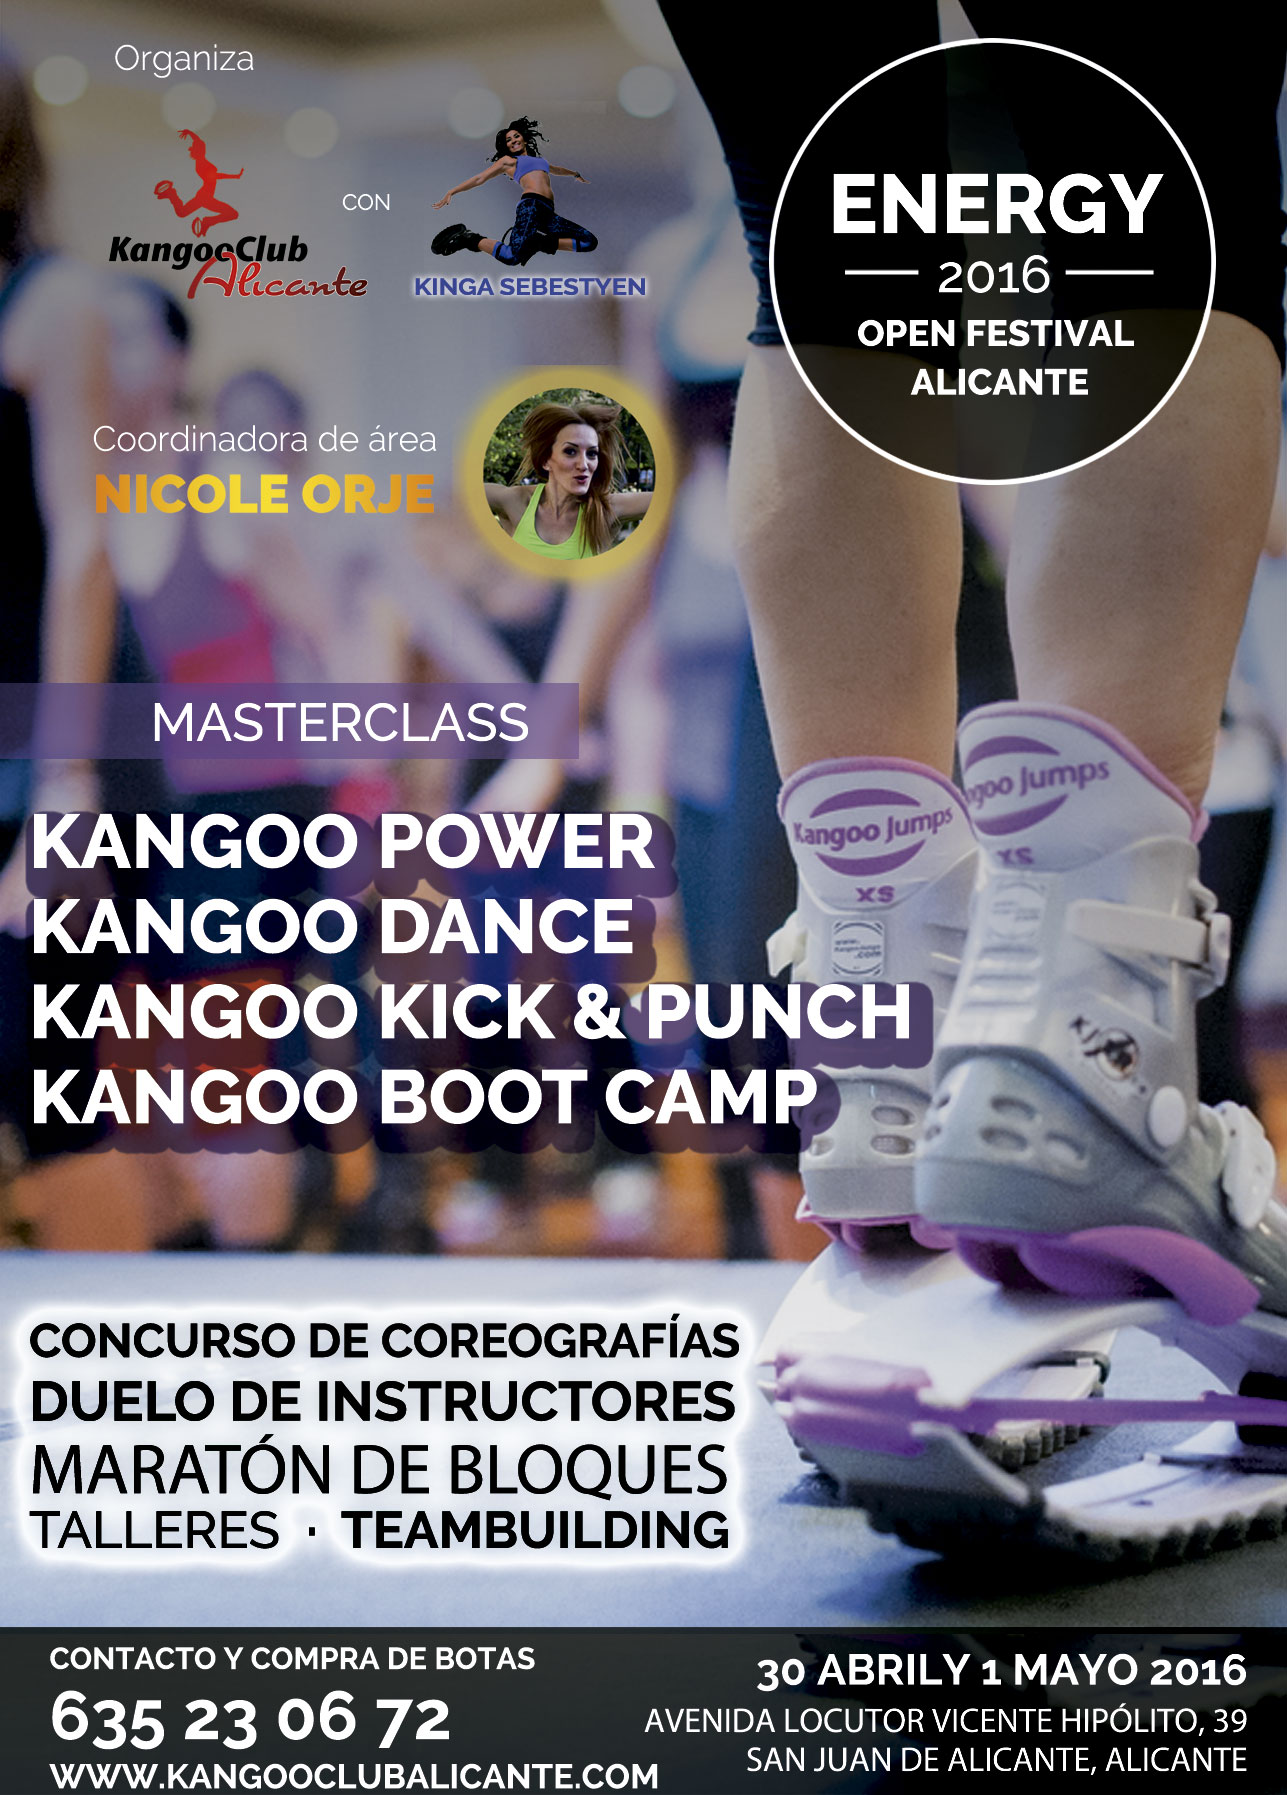 flyer-energy2016-kangoo-FB